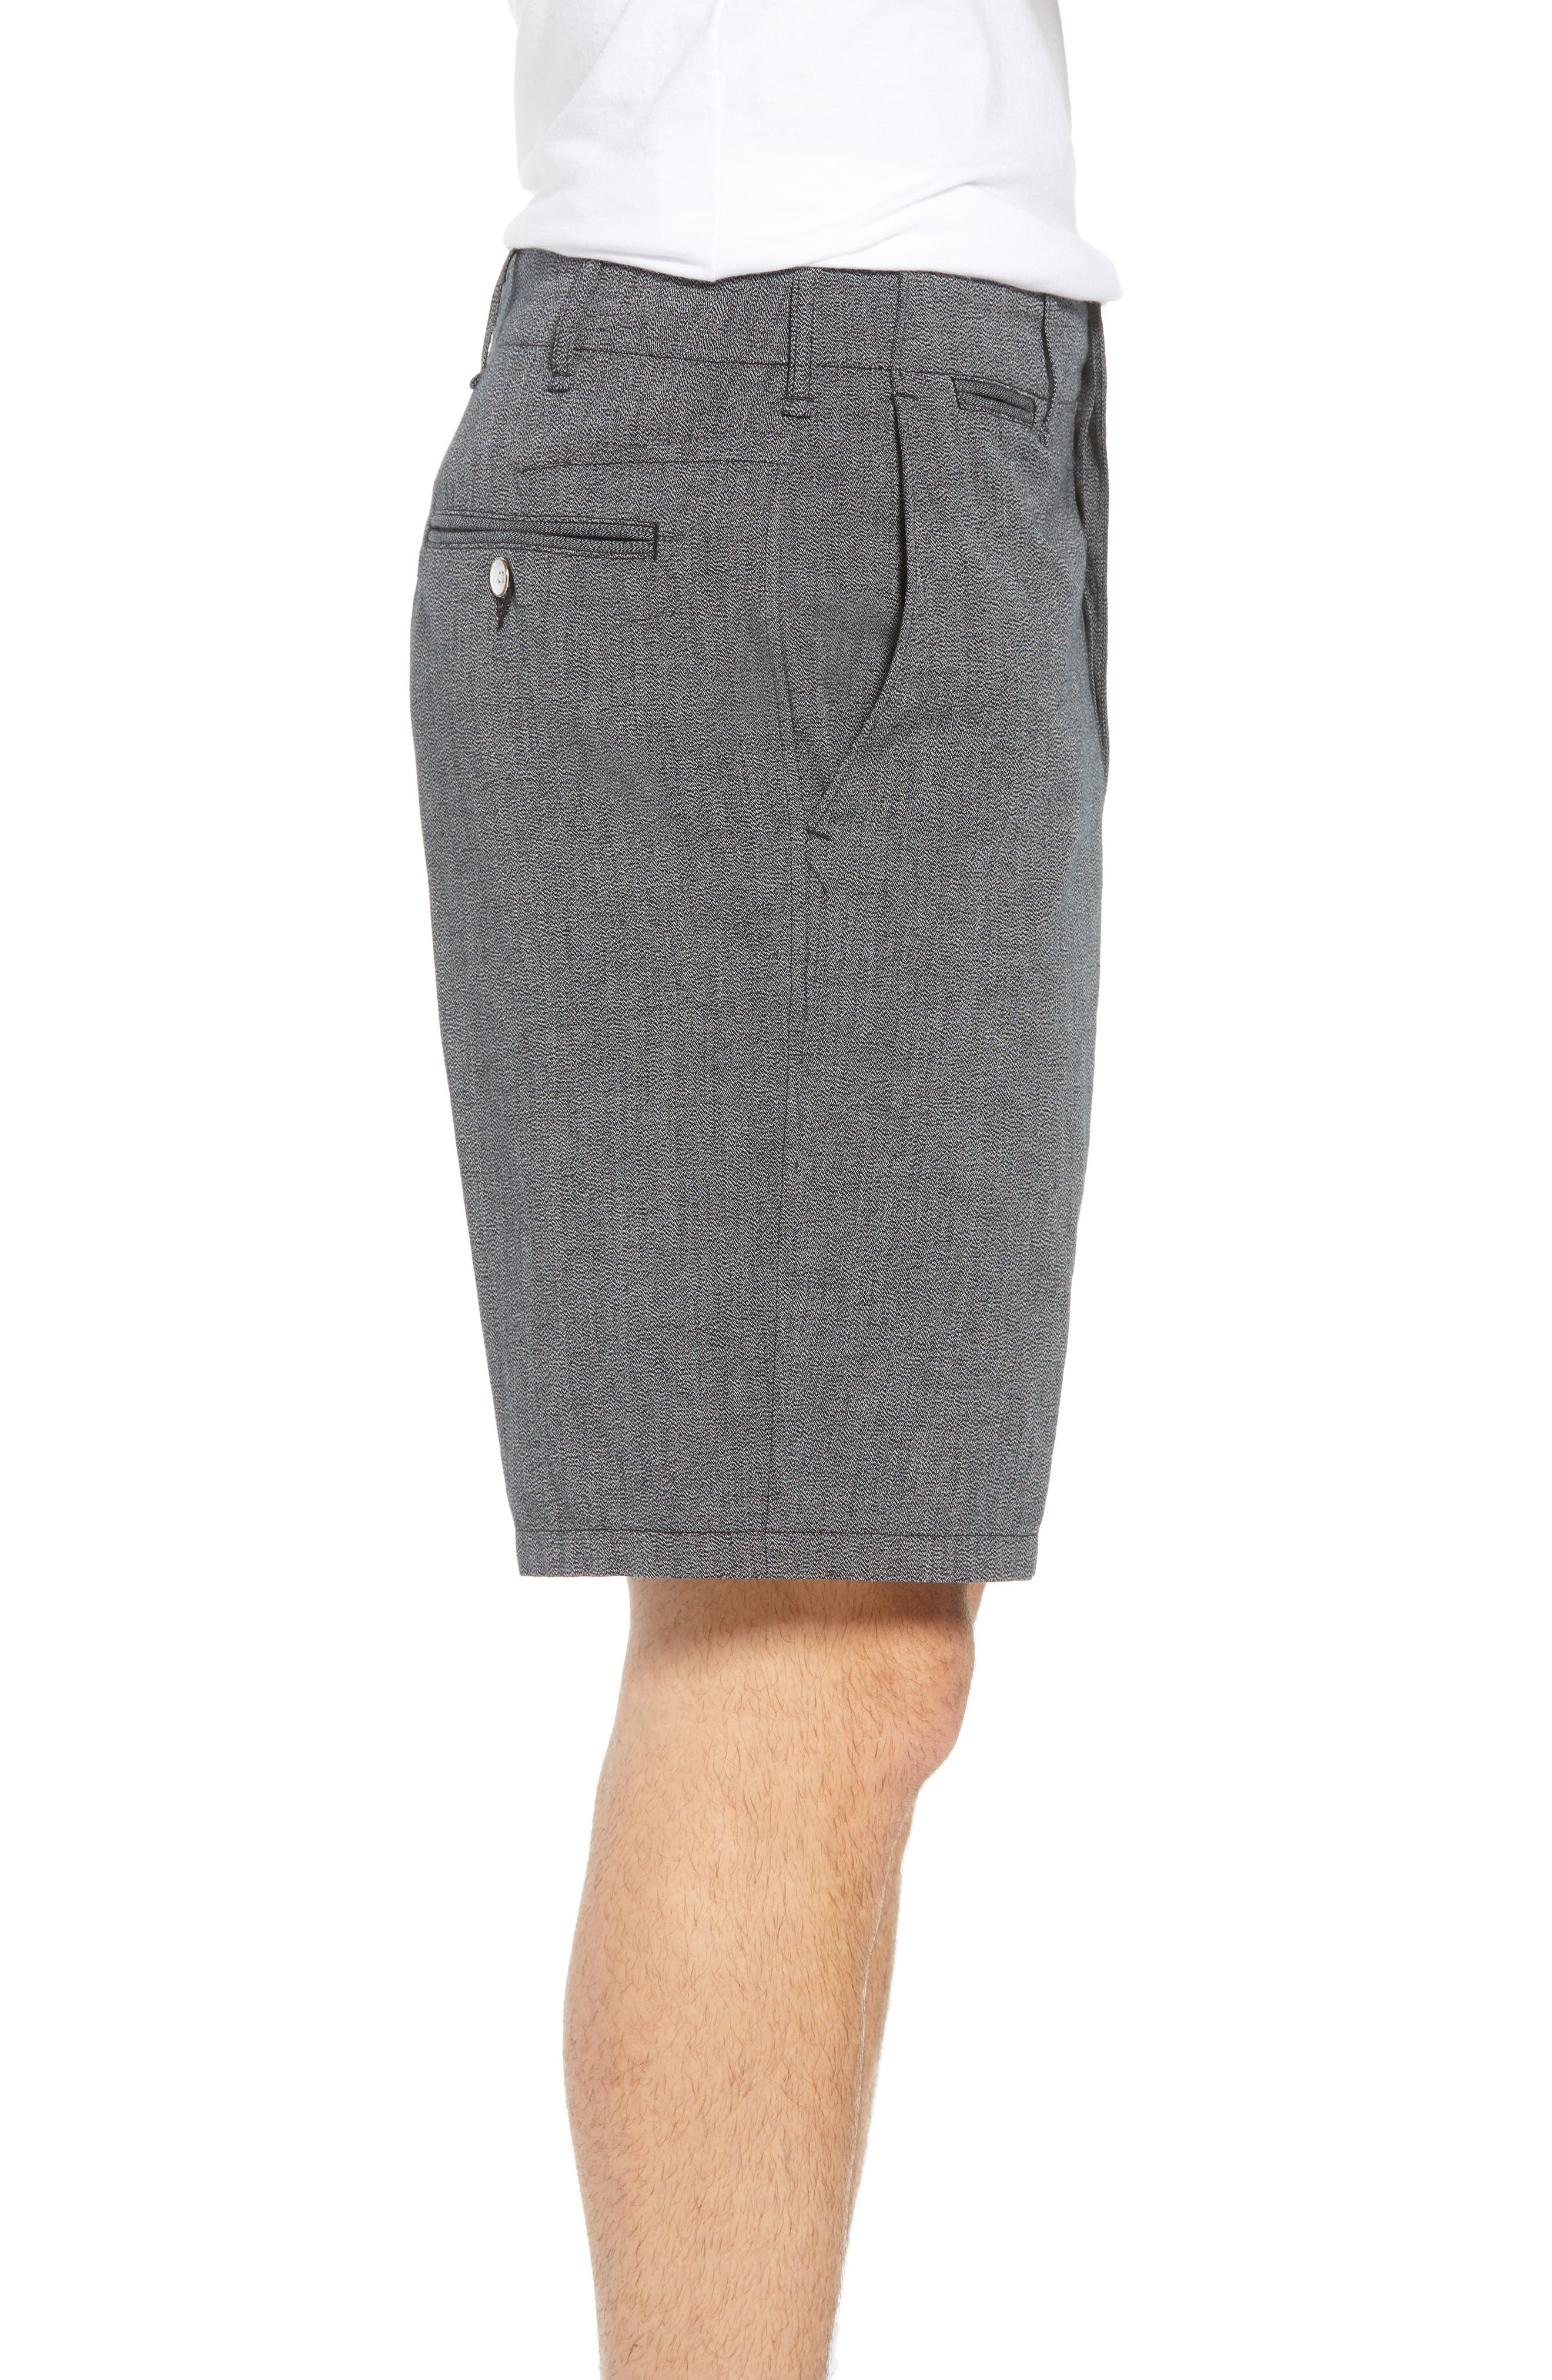 Base Classic Fit Shorts,                             Alternate thumbnail 3, color,                             020